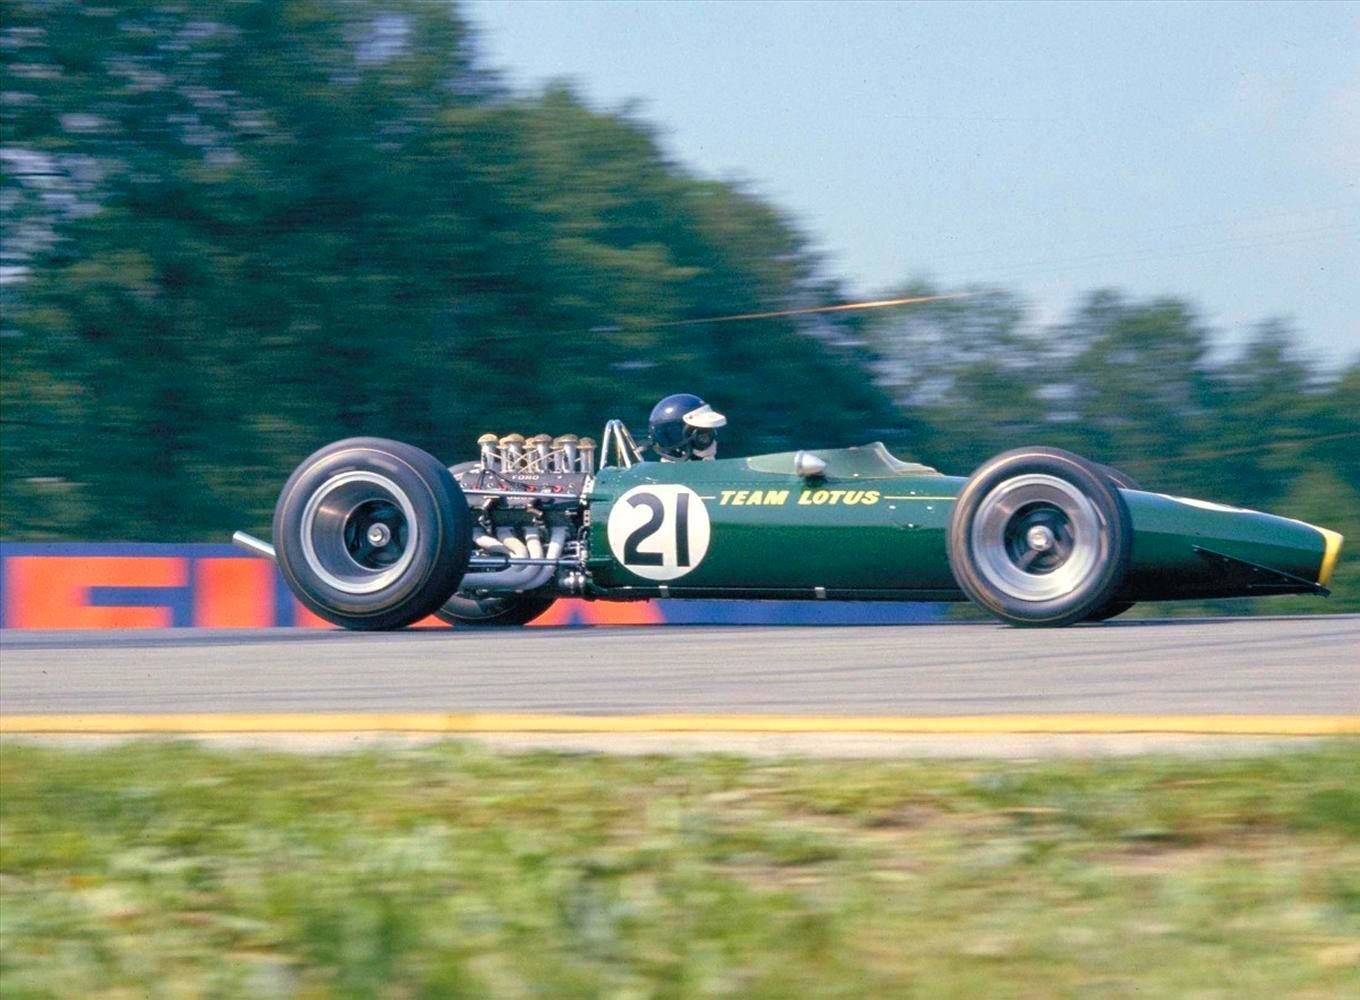 Simplicity and elegance, Jimmy Clark Lotus Ford 49 1967 | Vintage ...